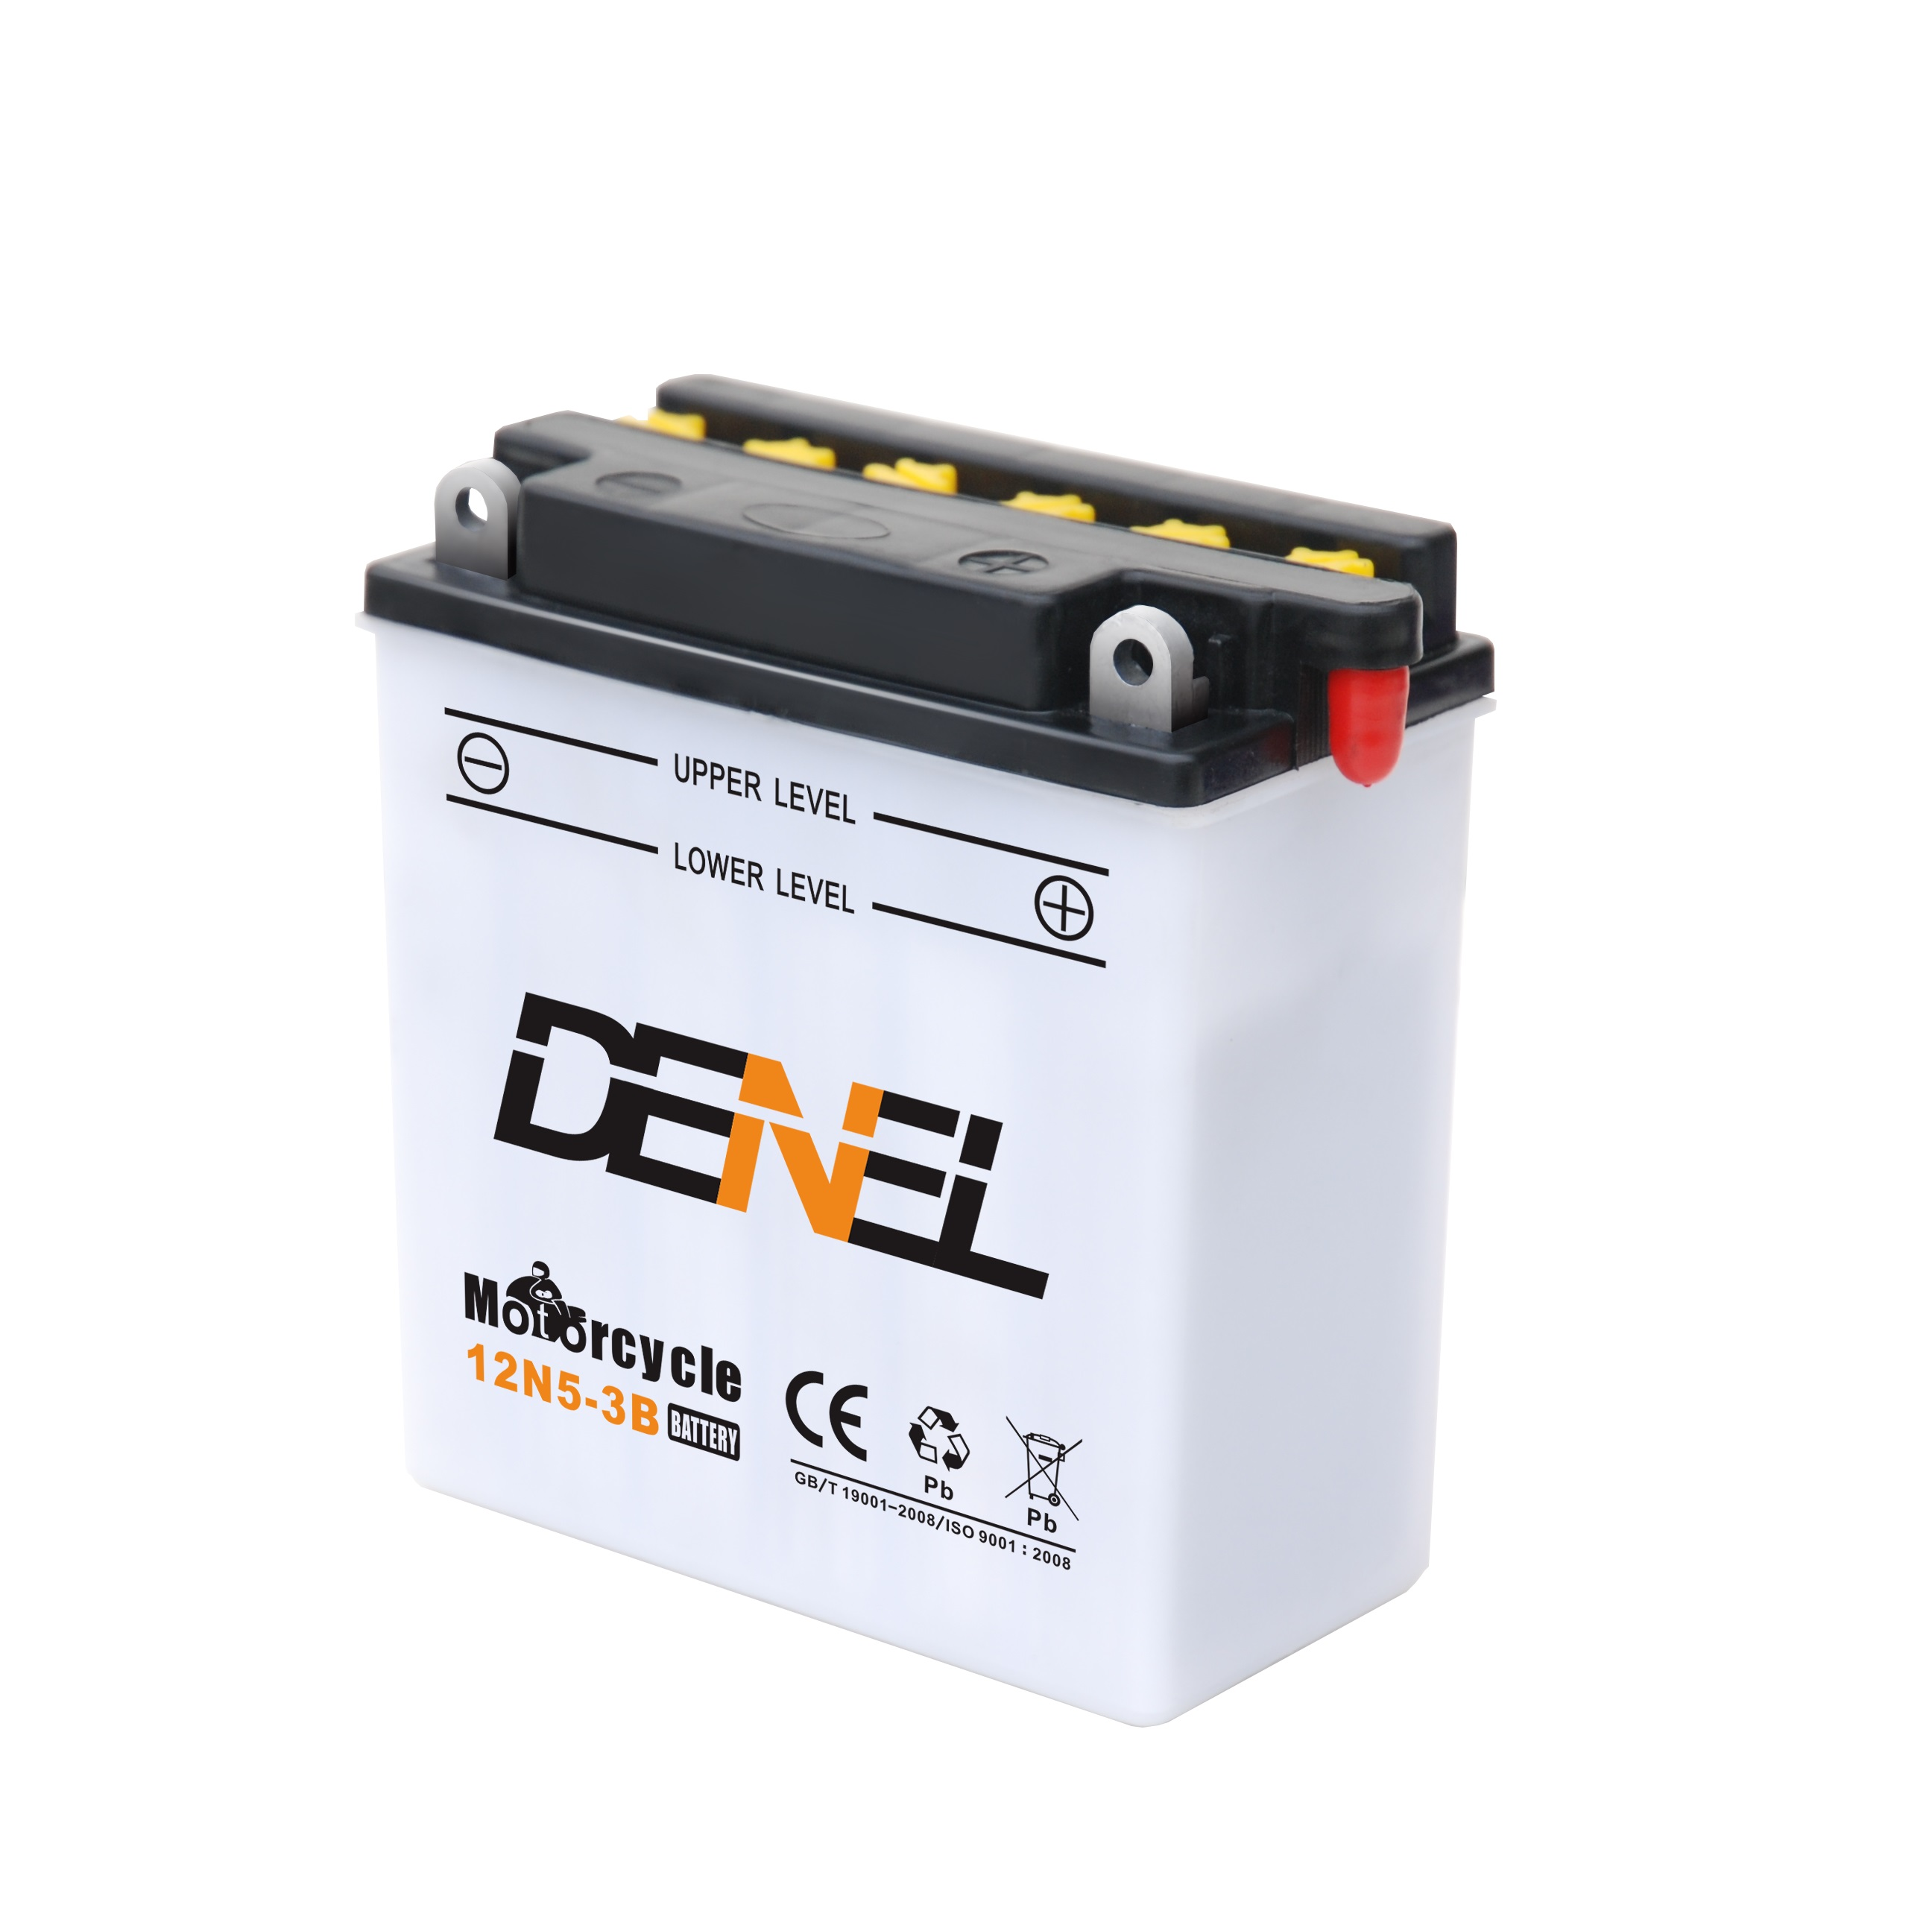 Lead Acid Dry Charged  Batteries For Starting, 12N5-3B 12v5ah